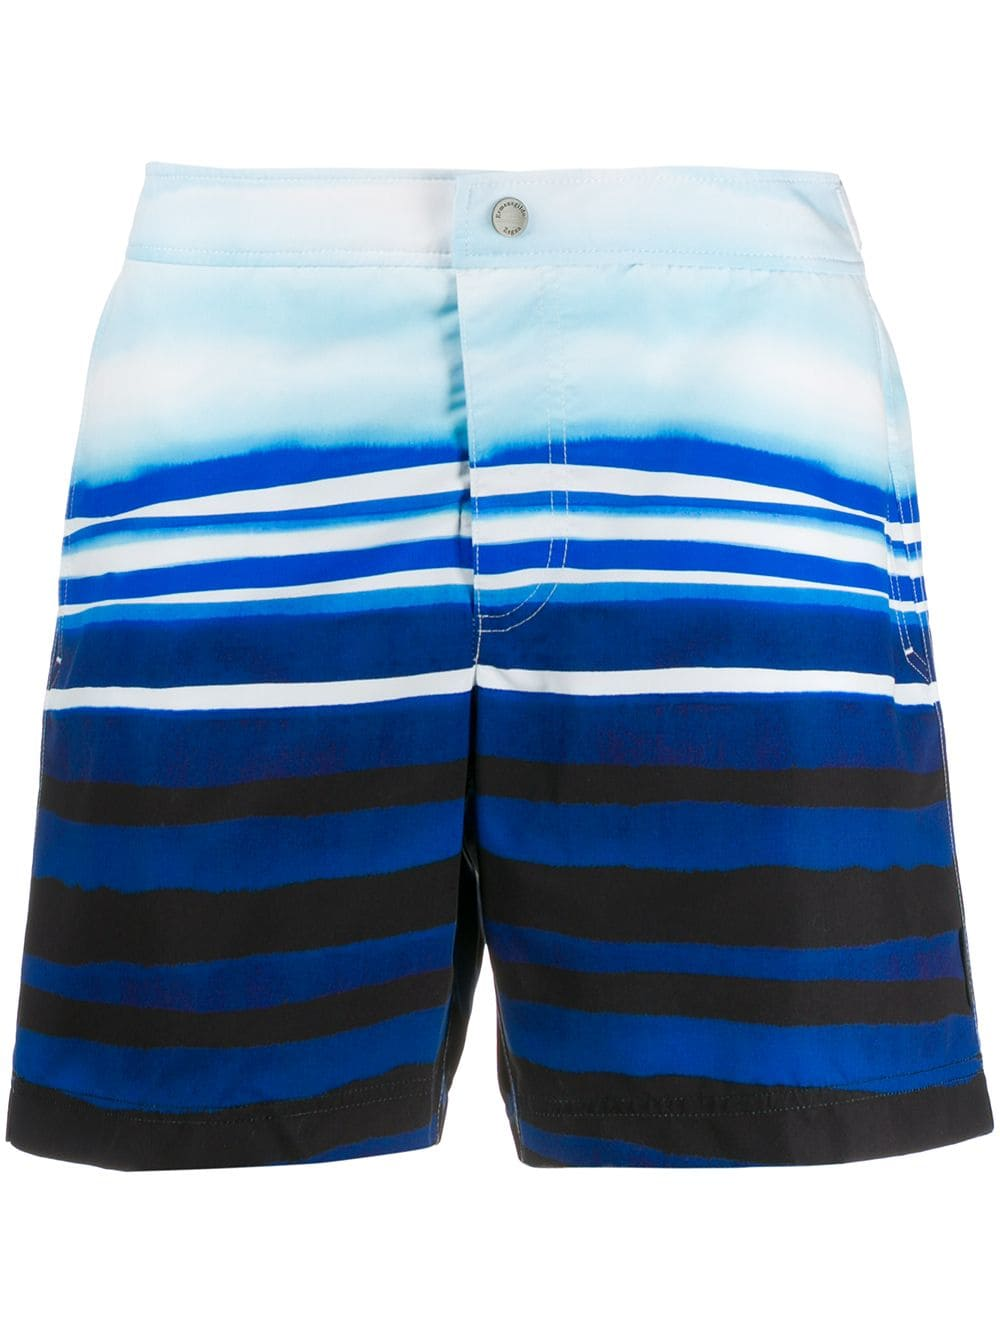 df6ac29c Ermenegildo Zegna striped swim shorts - Blue in 2019 | Products ...